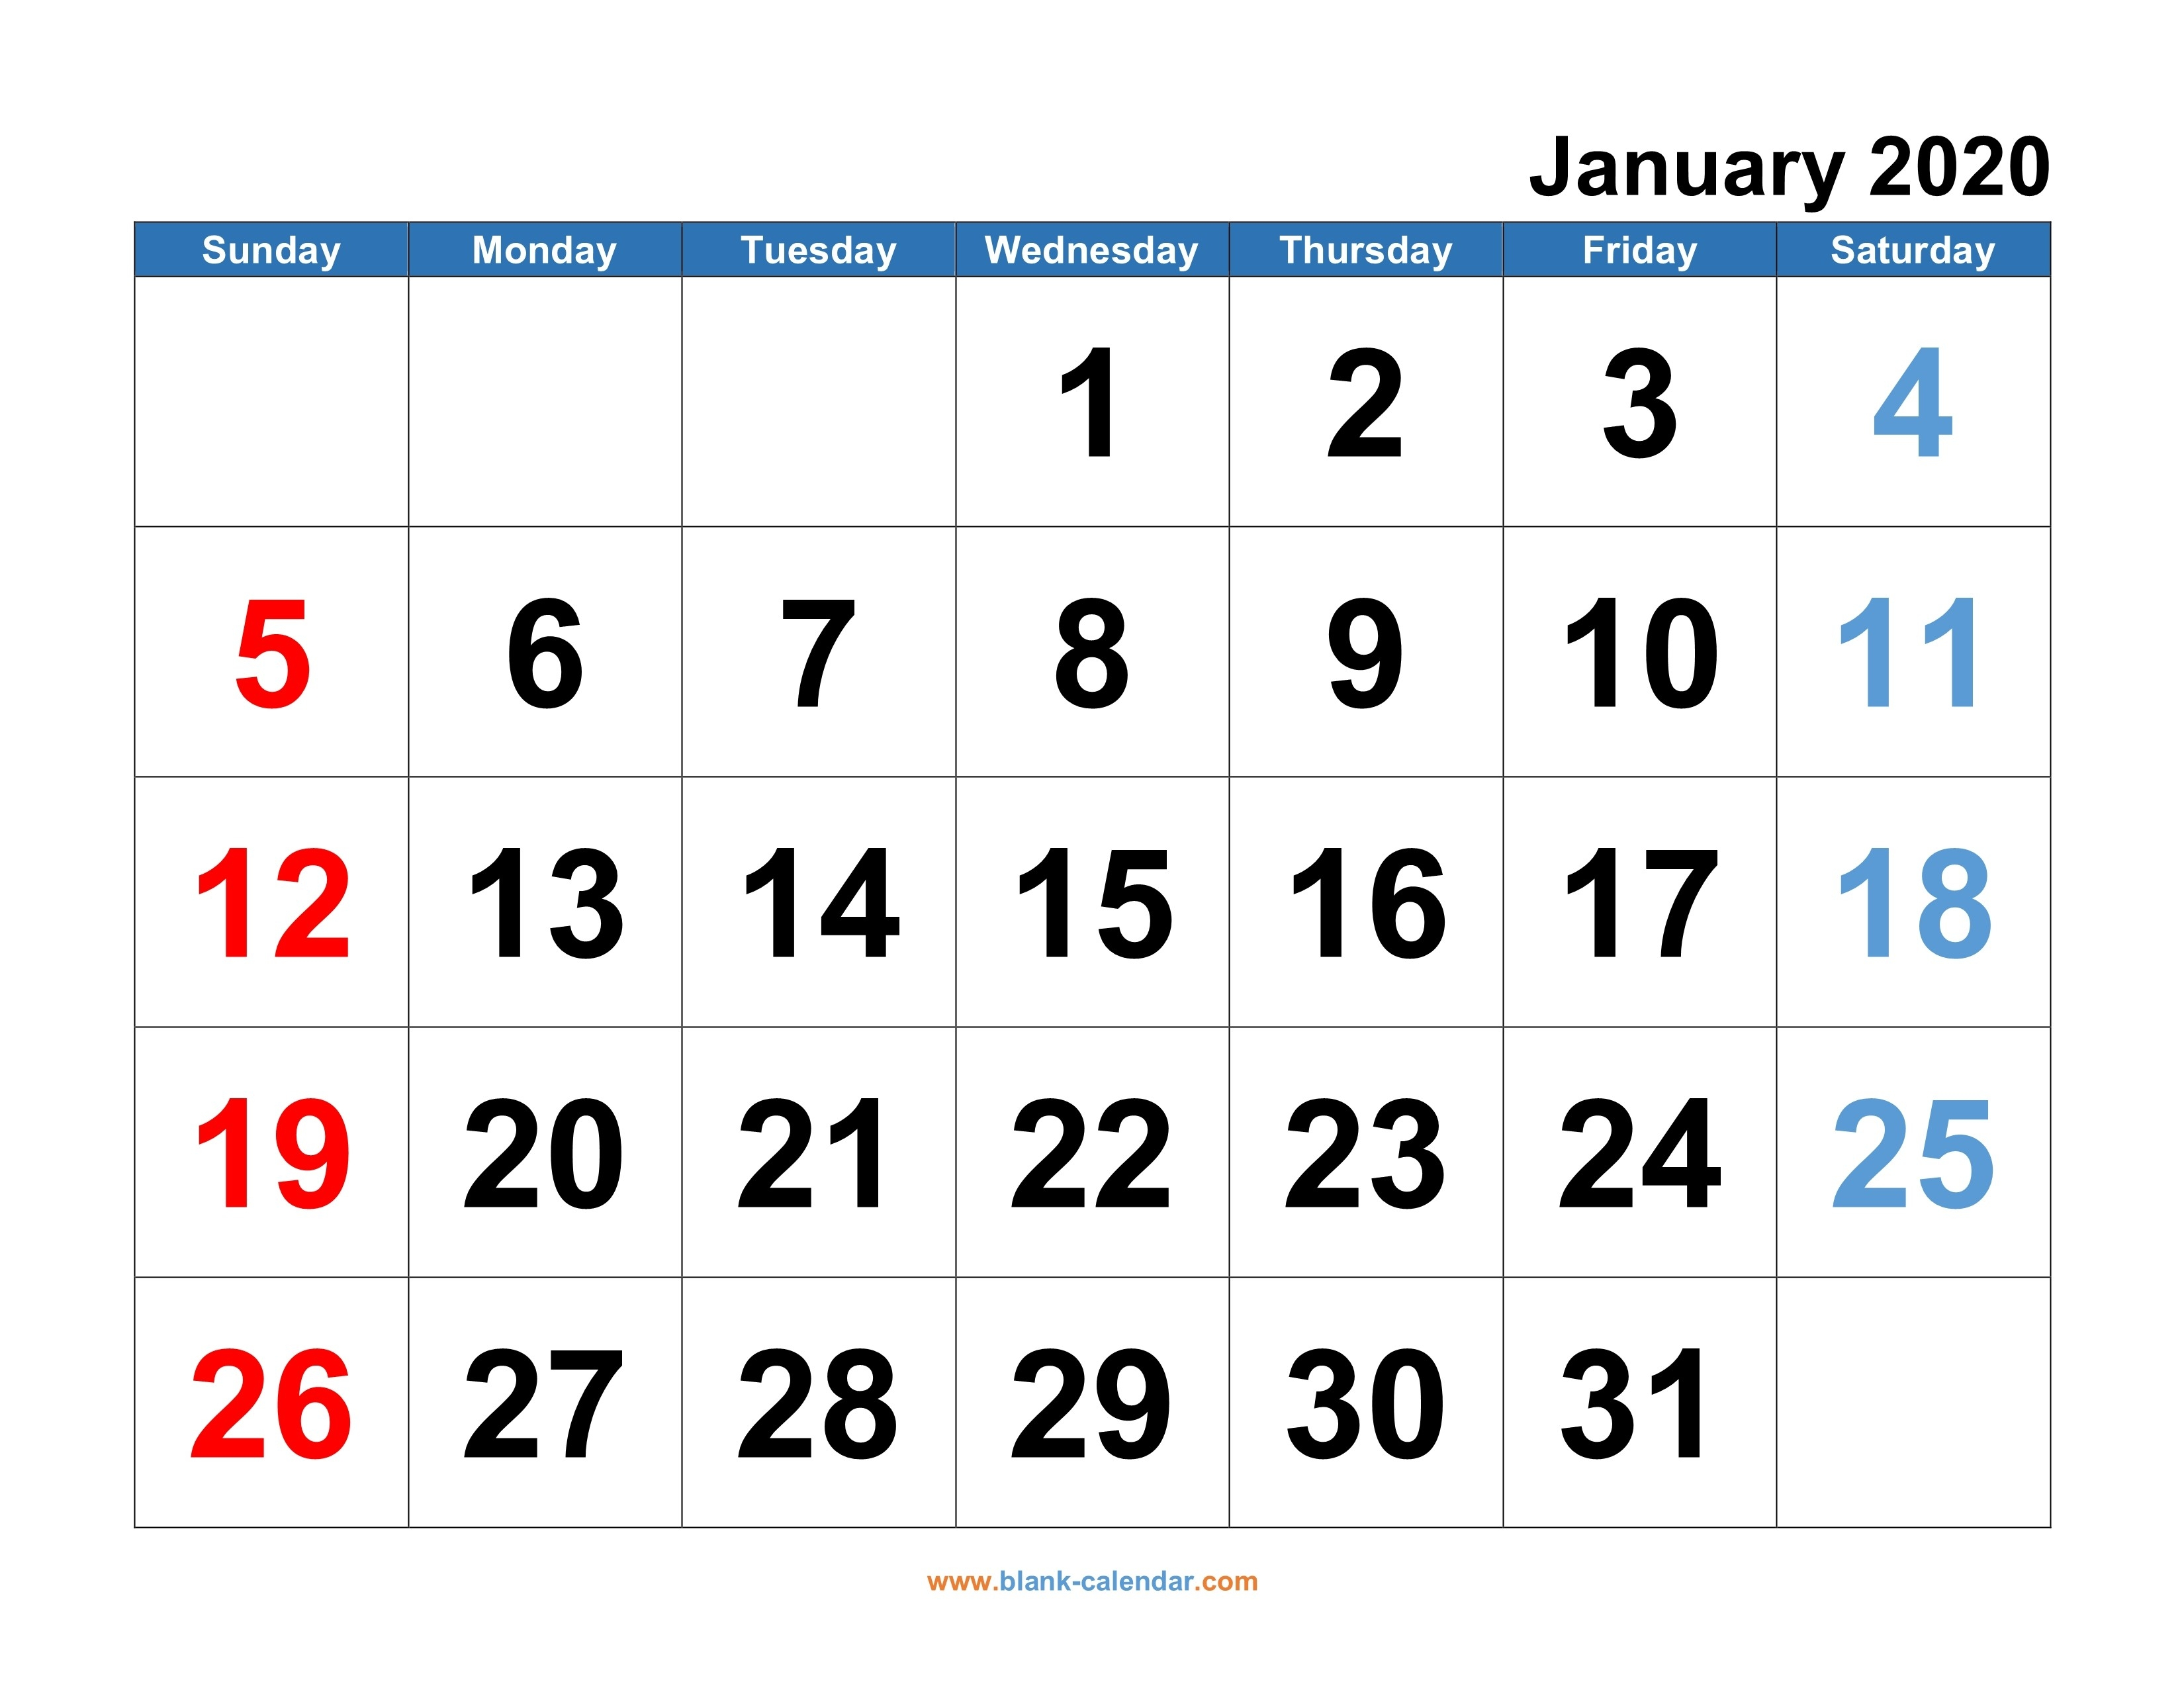 Monthly Calendar 2020 | Free Download, Editable And Printable-Printable Monthly 5 Day Calendar 2020